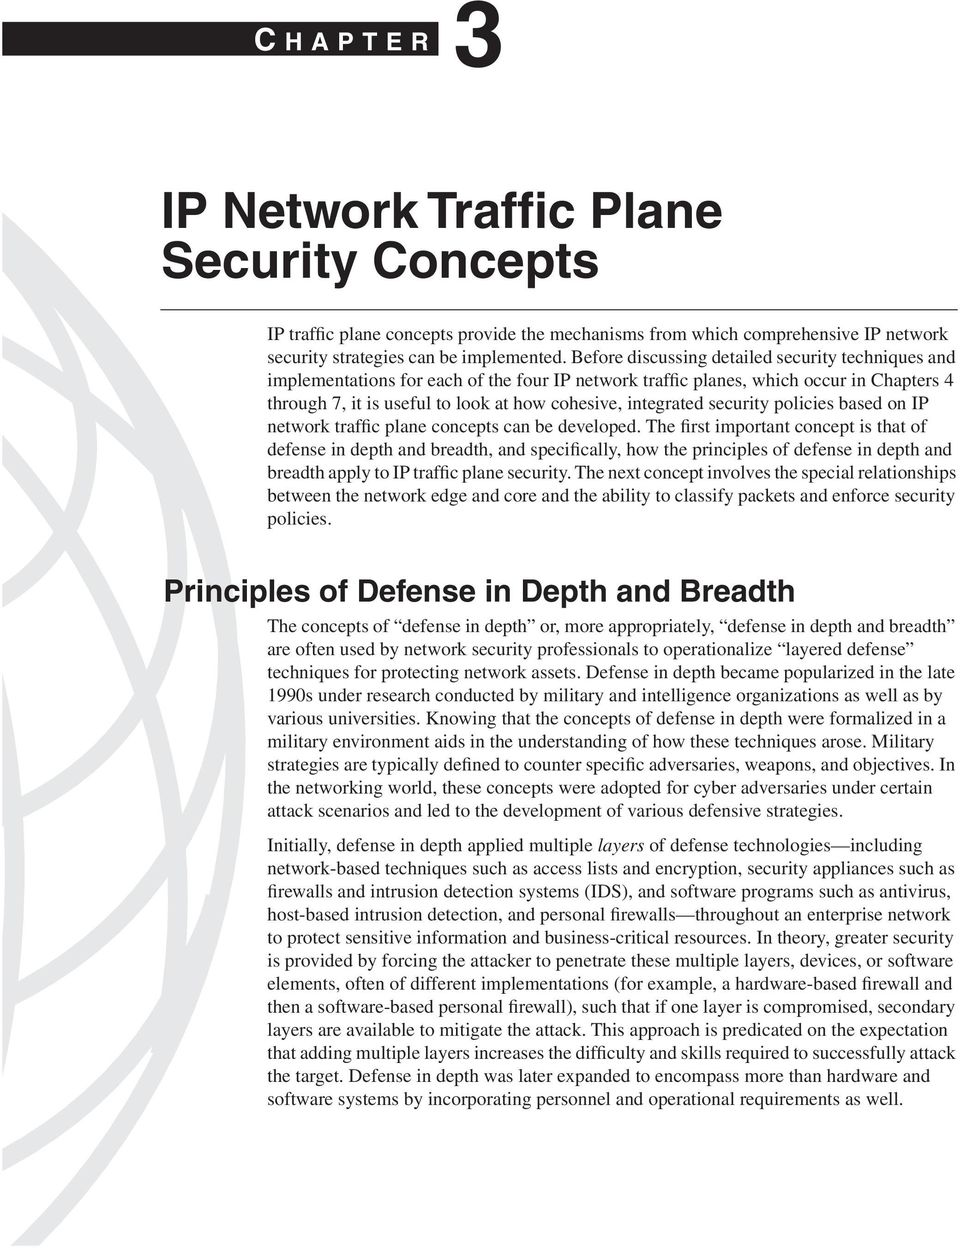 integrated security policies based on IP network traffic plane concepts can be developed.